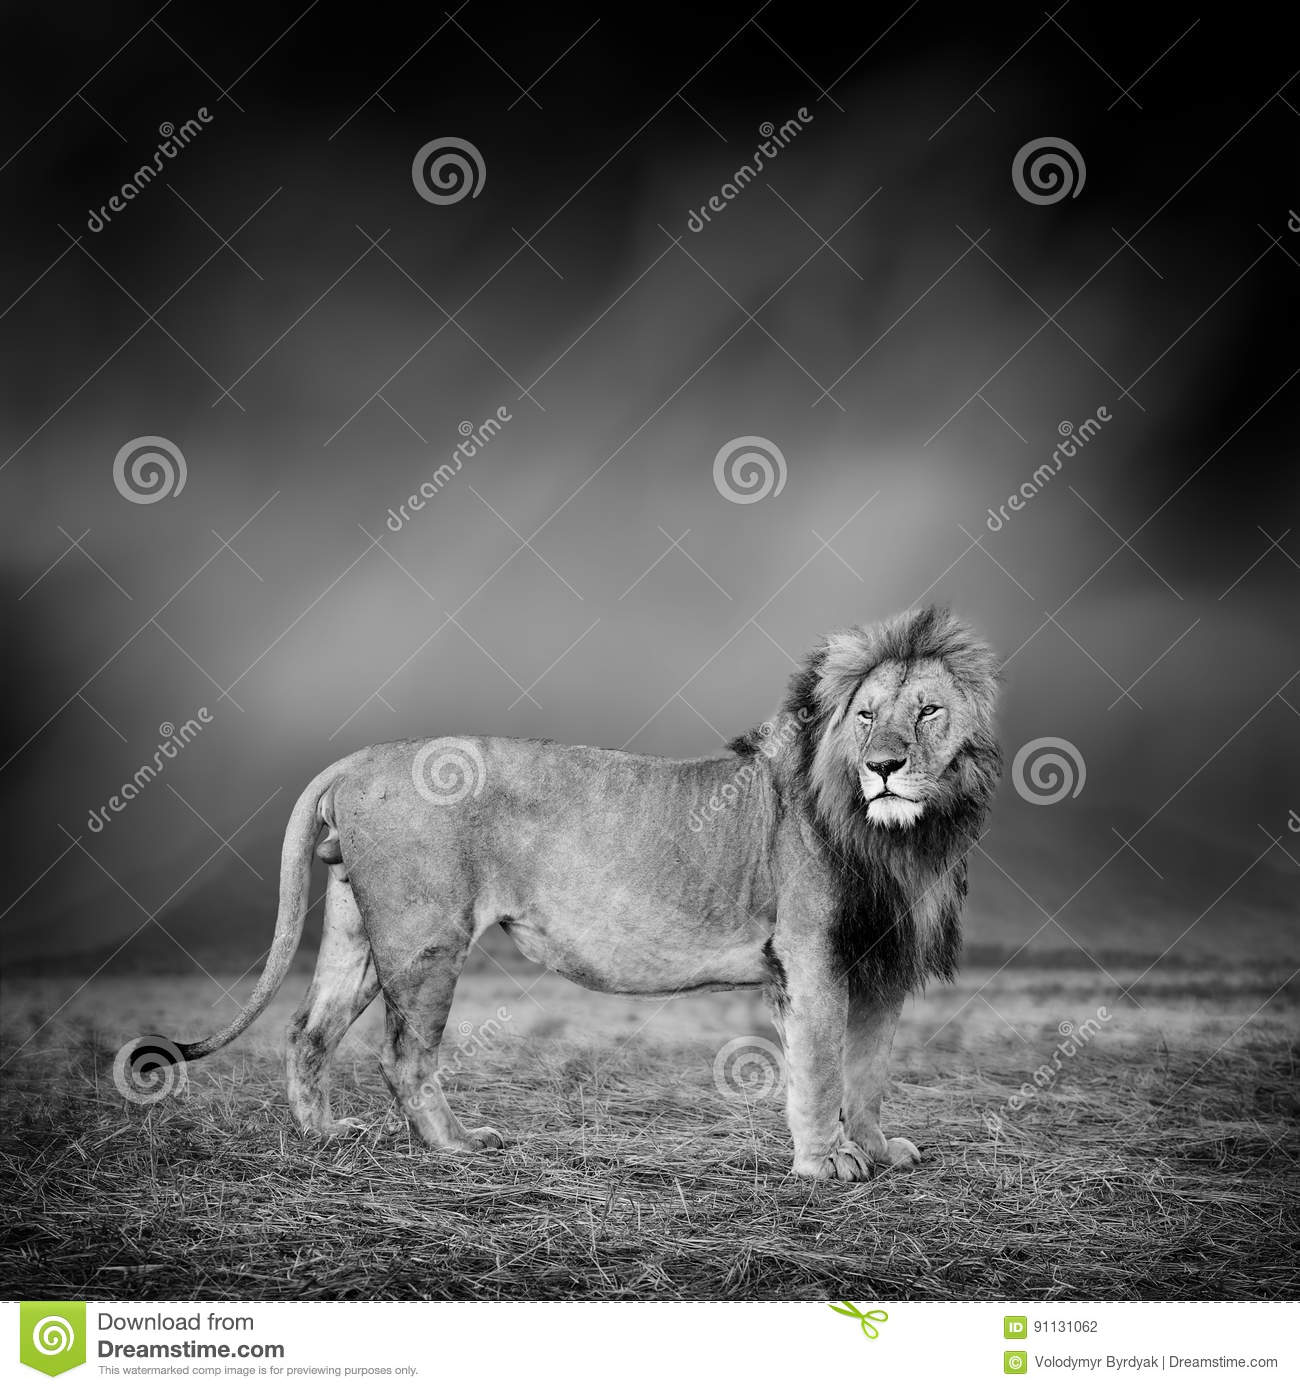 Black and white image of a lion